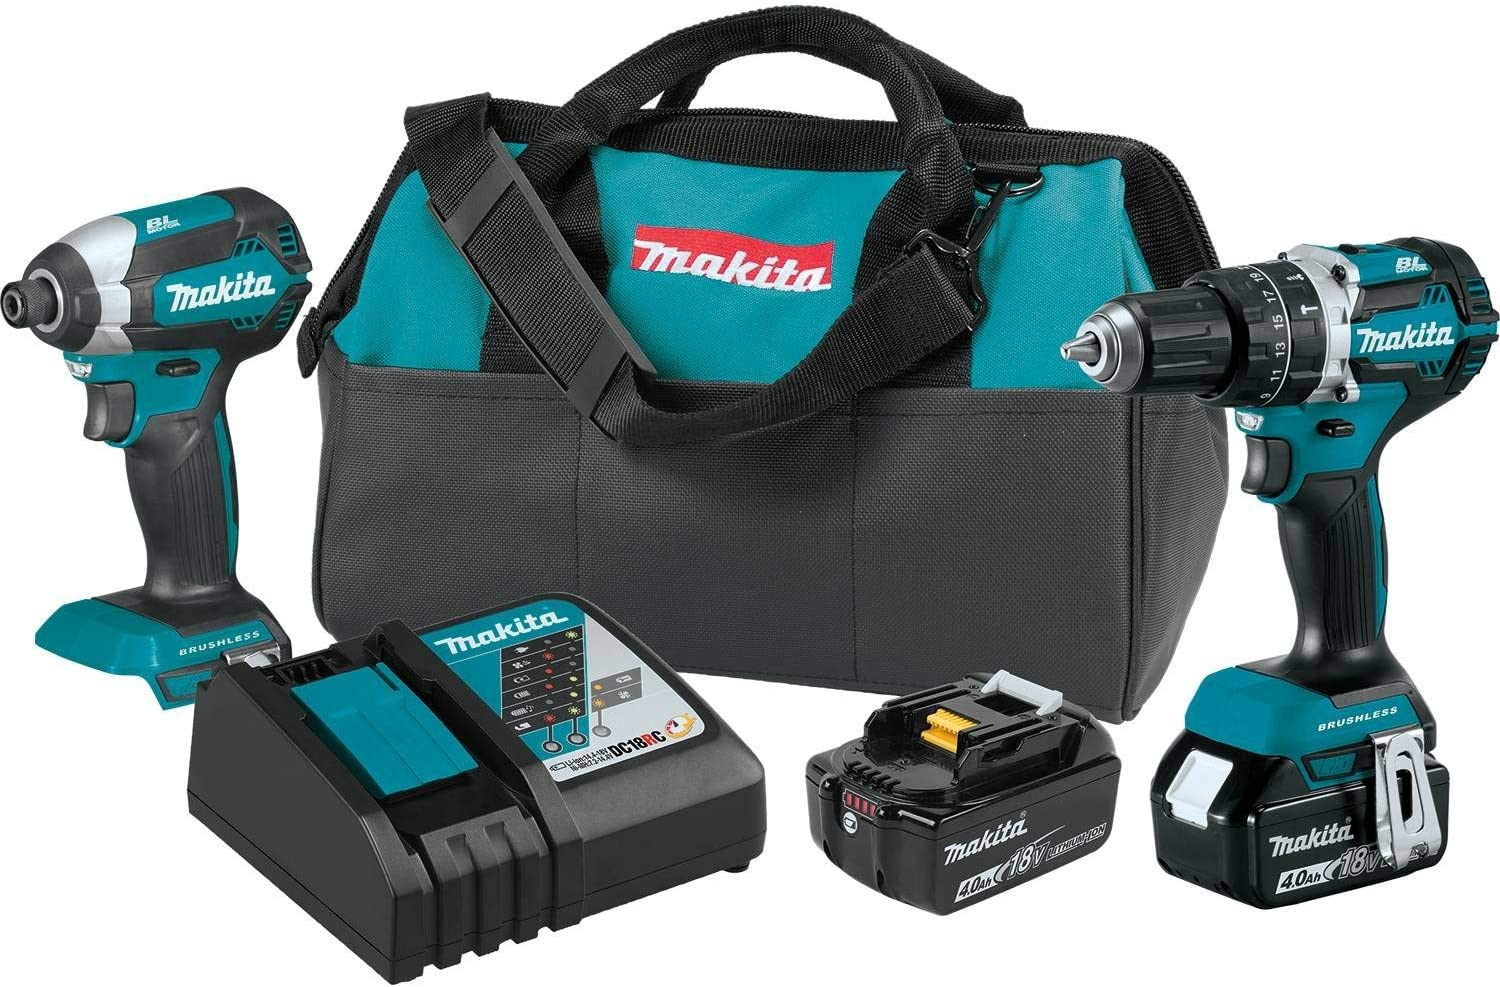 Makita XT269M 18V LXT Lithium-Ion Brushless